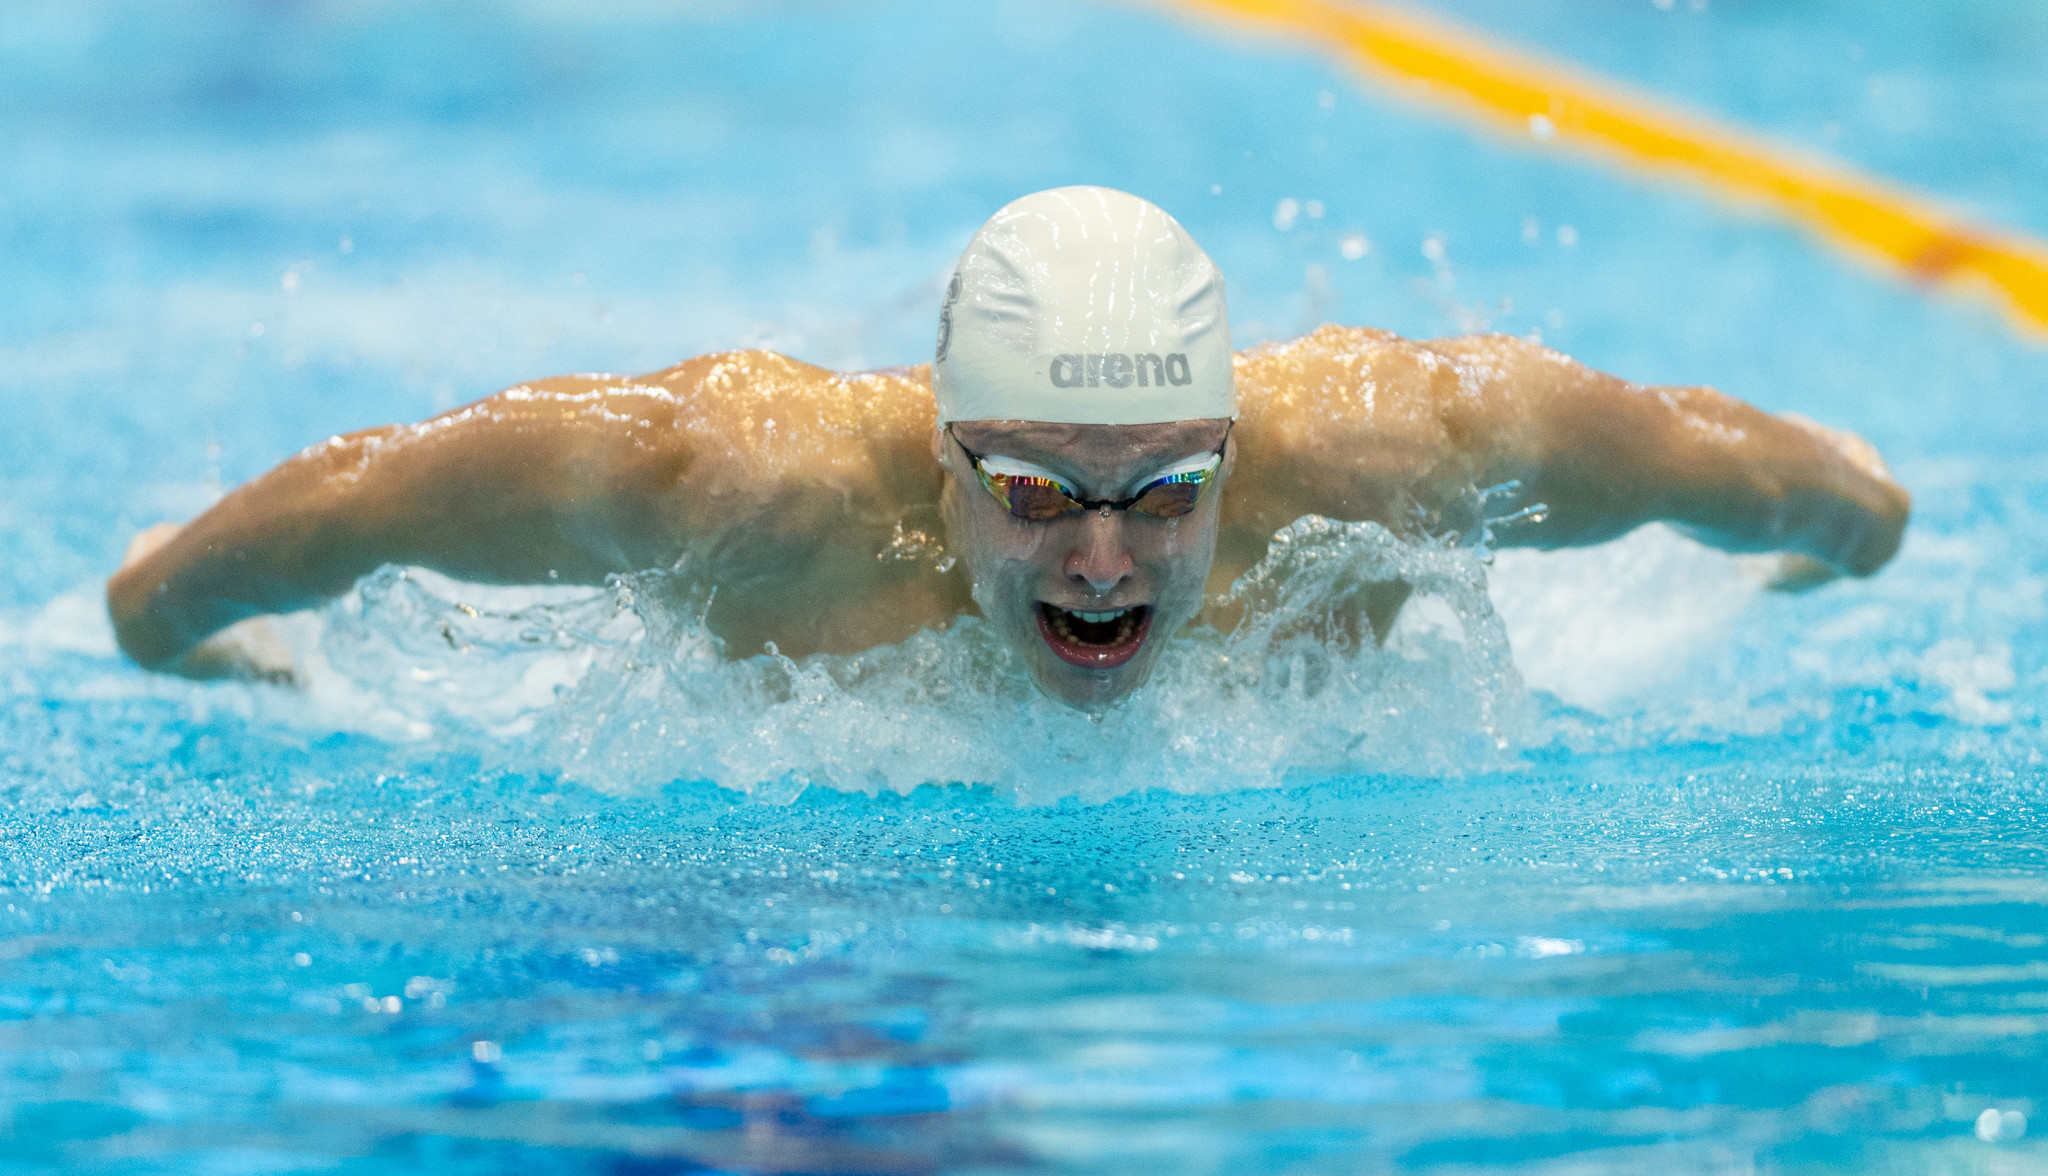 Stellar field lines up for second stage of International Swimming Federation World Cup